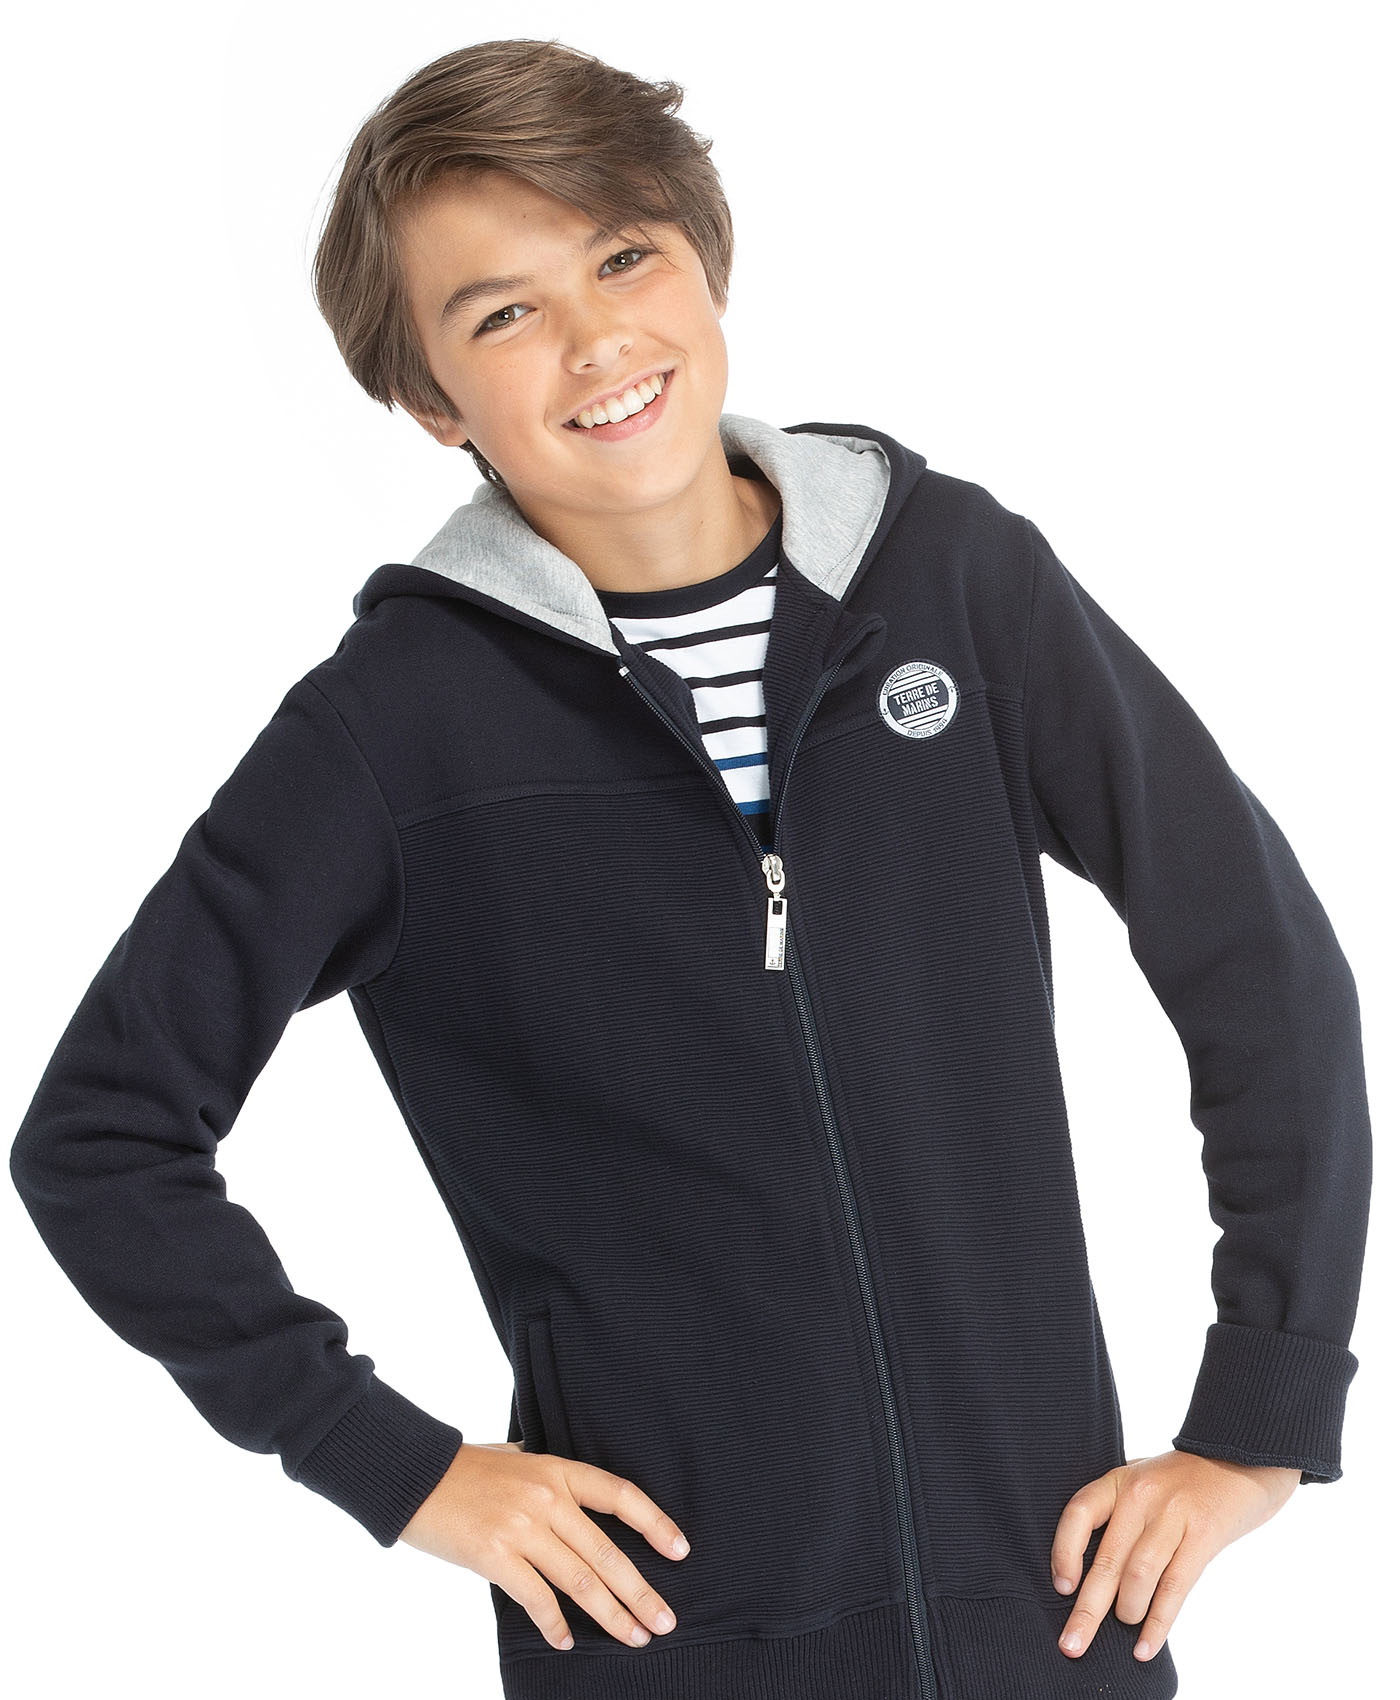 Veste junior - Mode marine Enfant